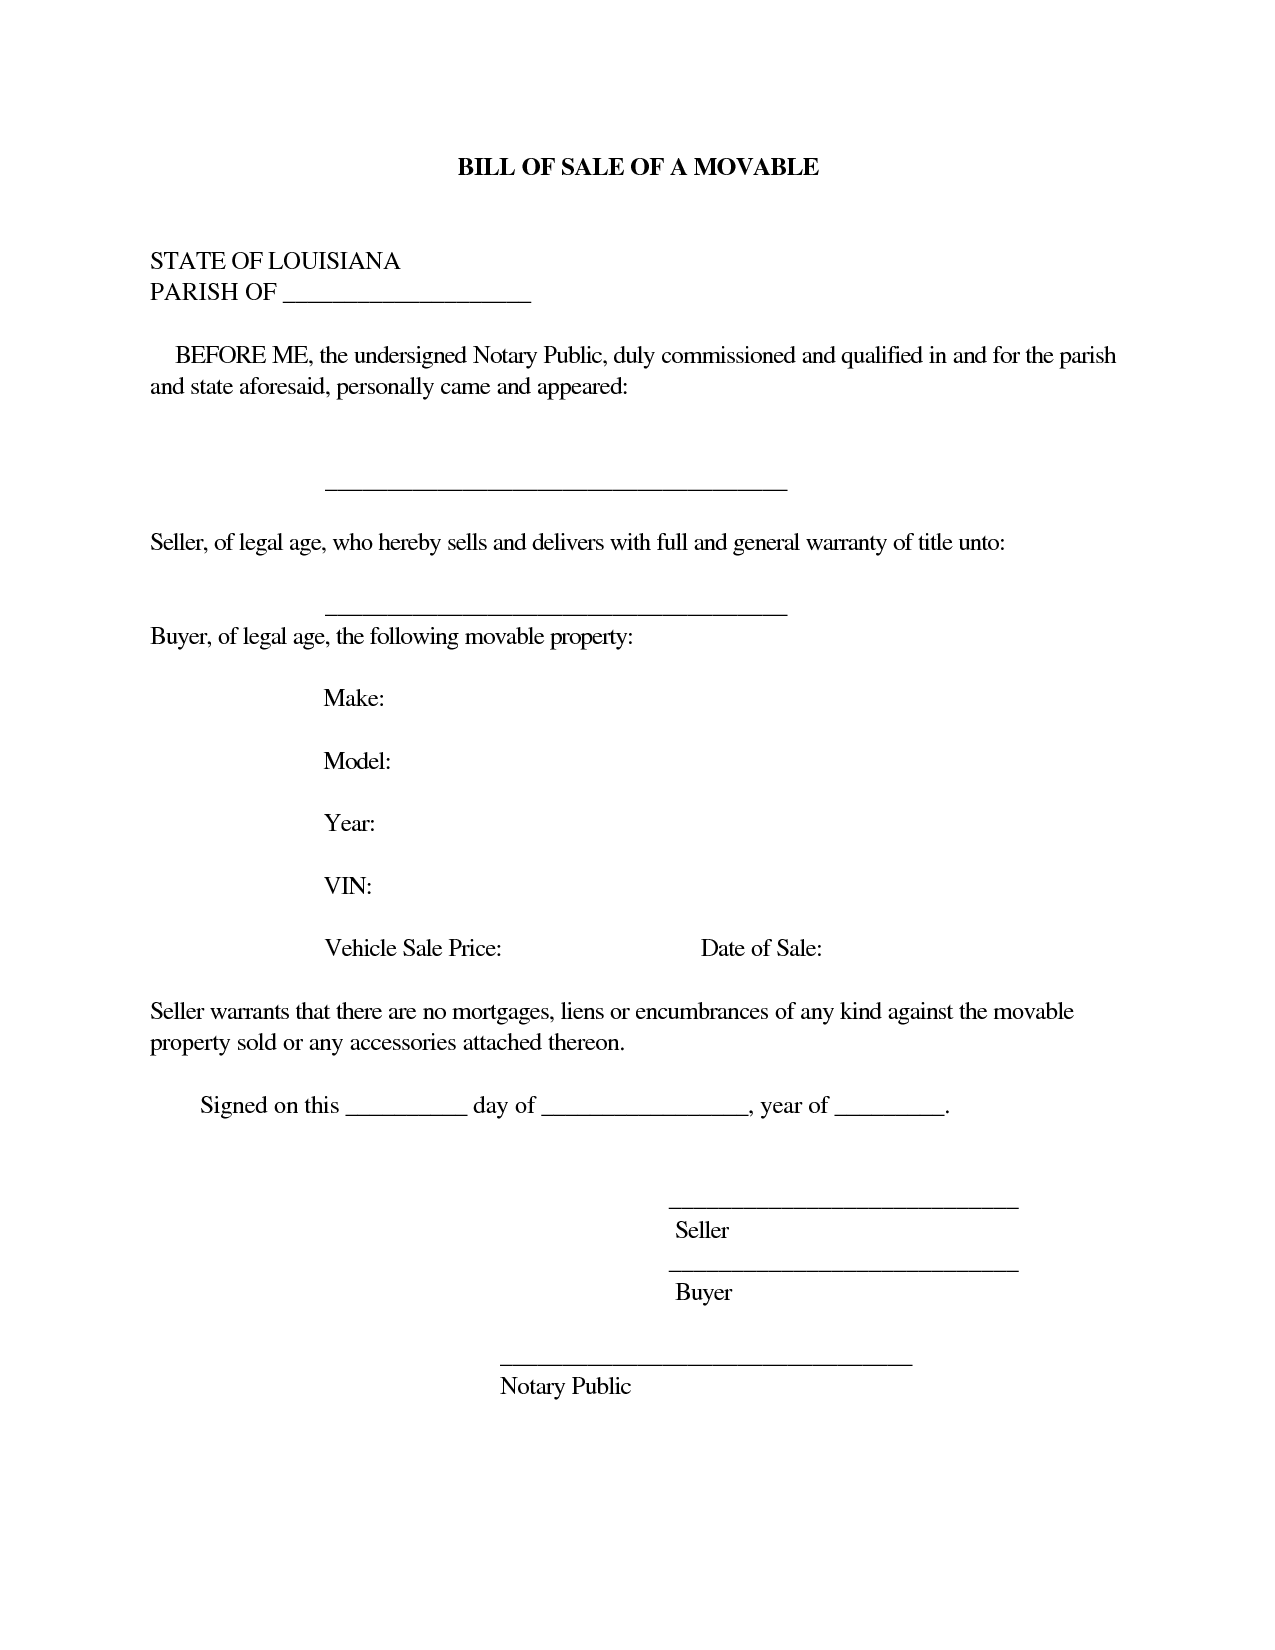 Printable Sample Champer Bill Of Sale Form  Free Legal Documents